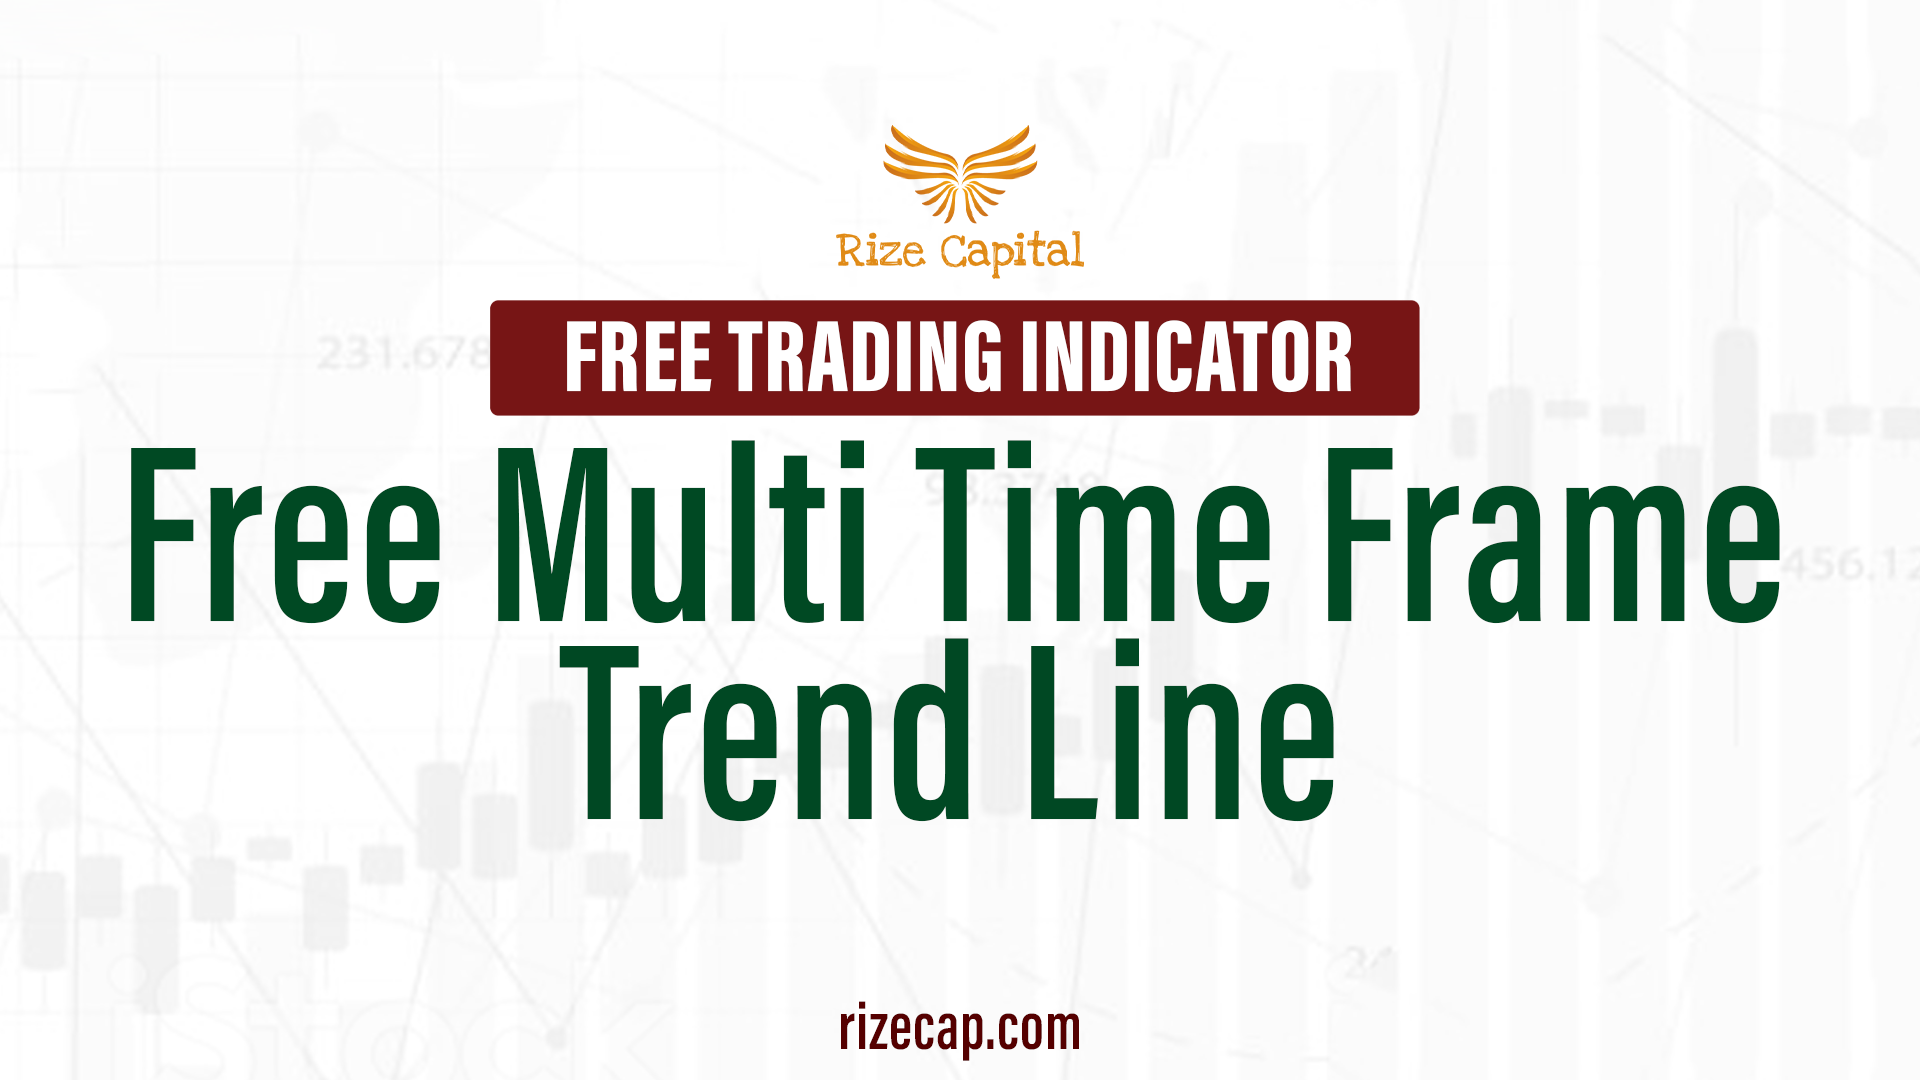 Free Multi Time Frame Trend Line Free indicator